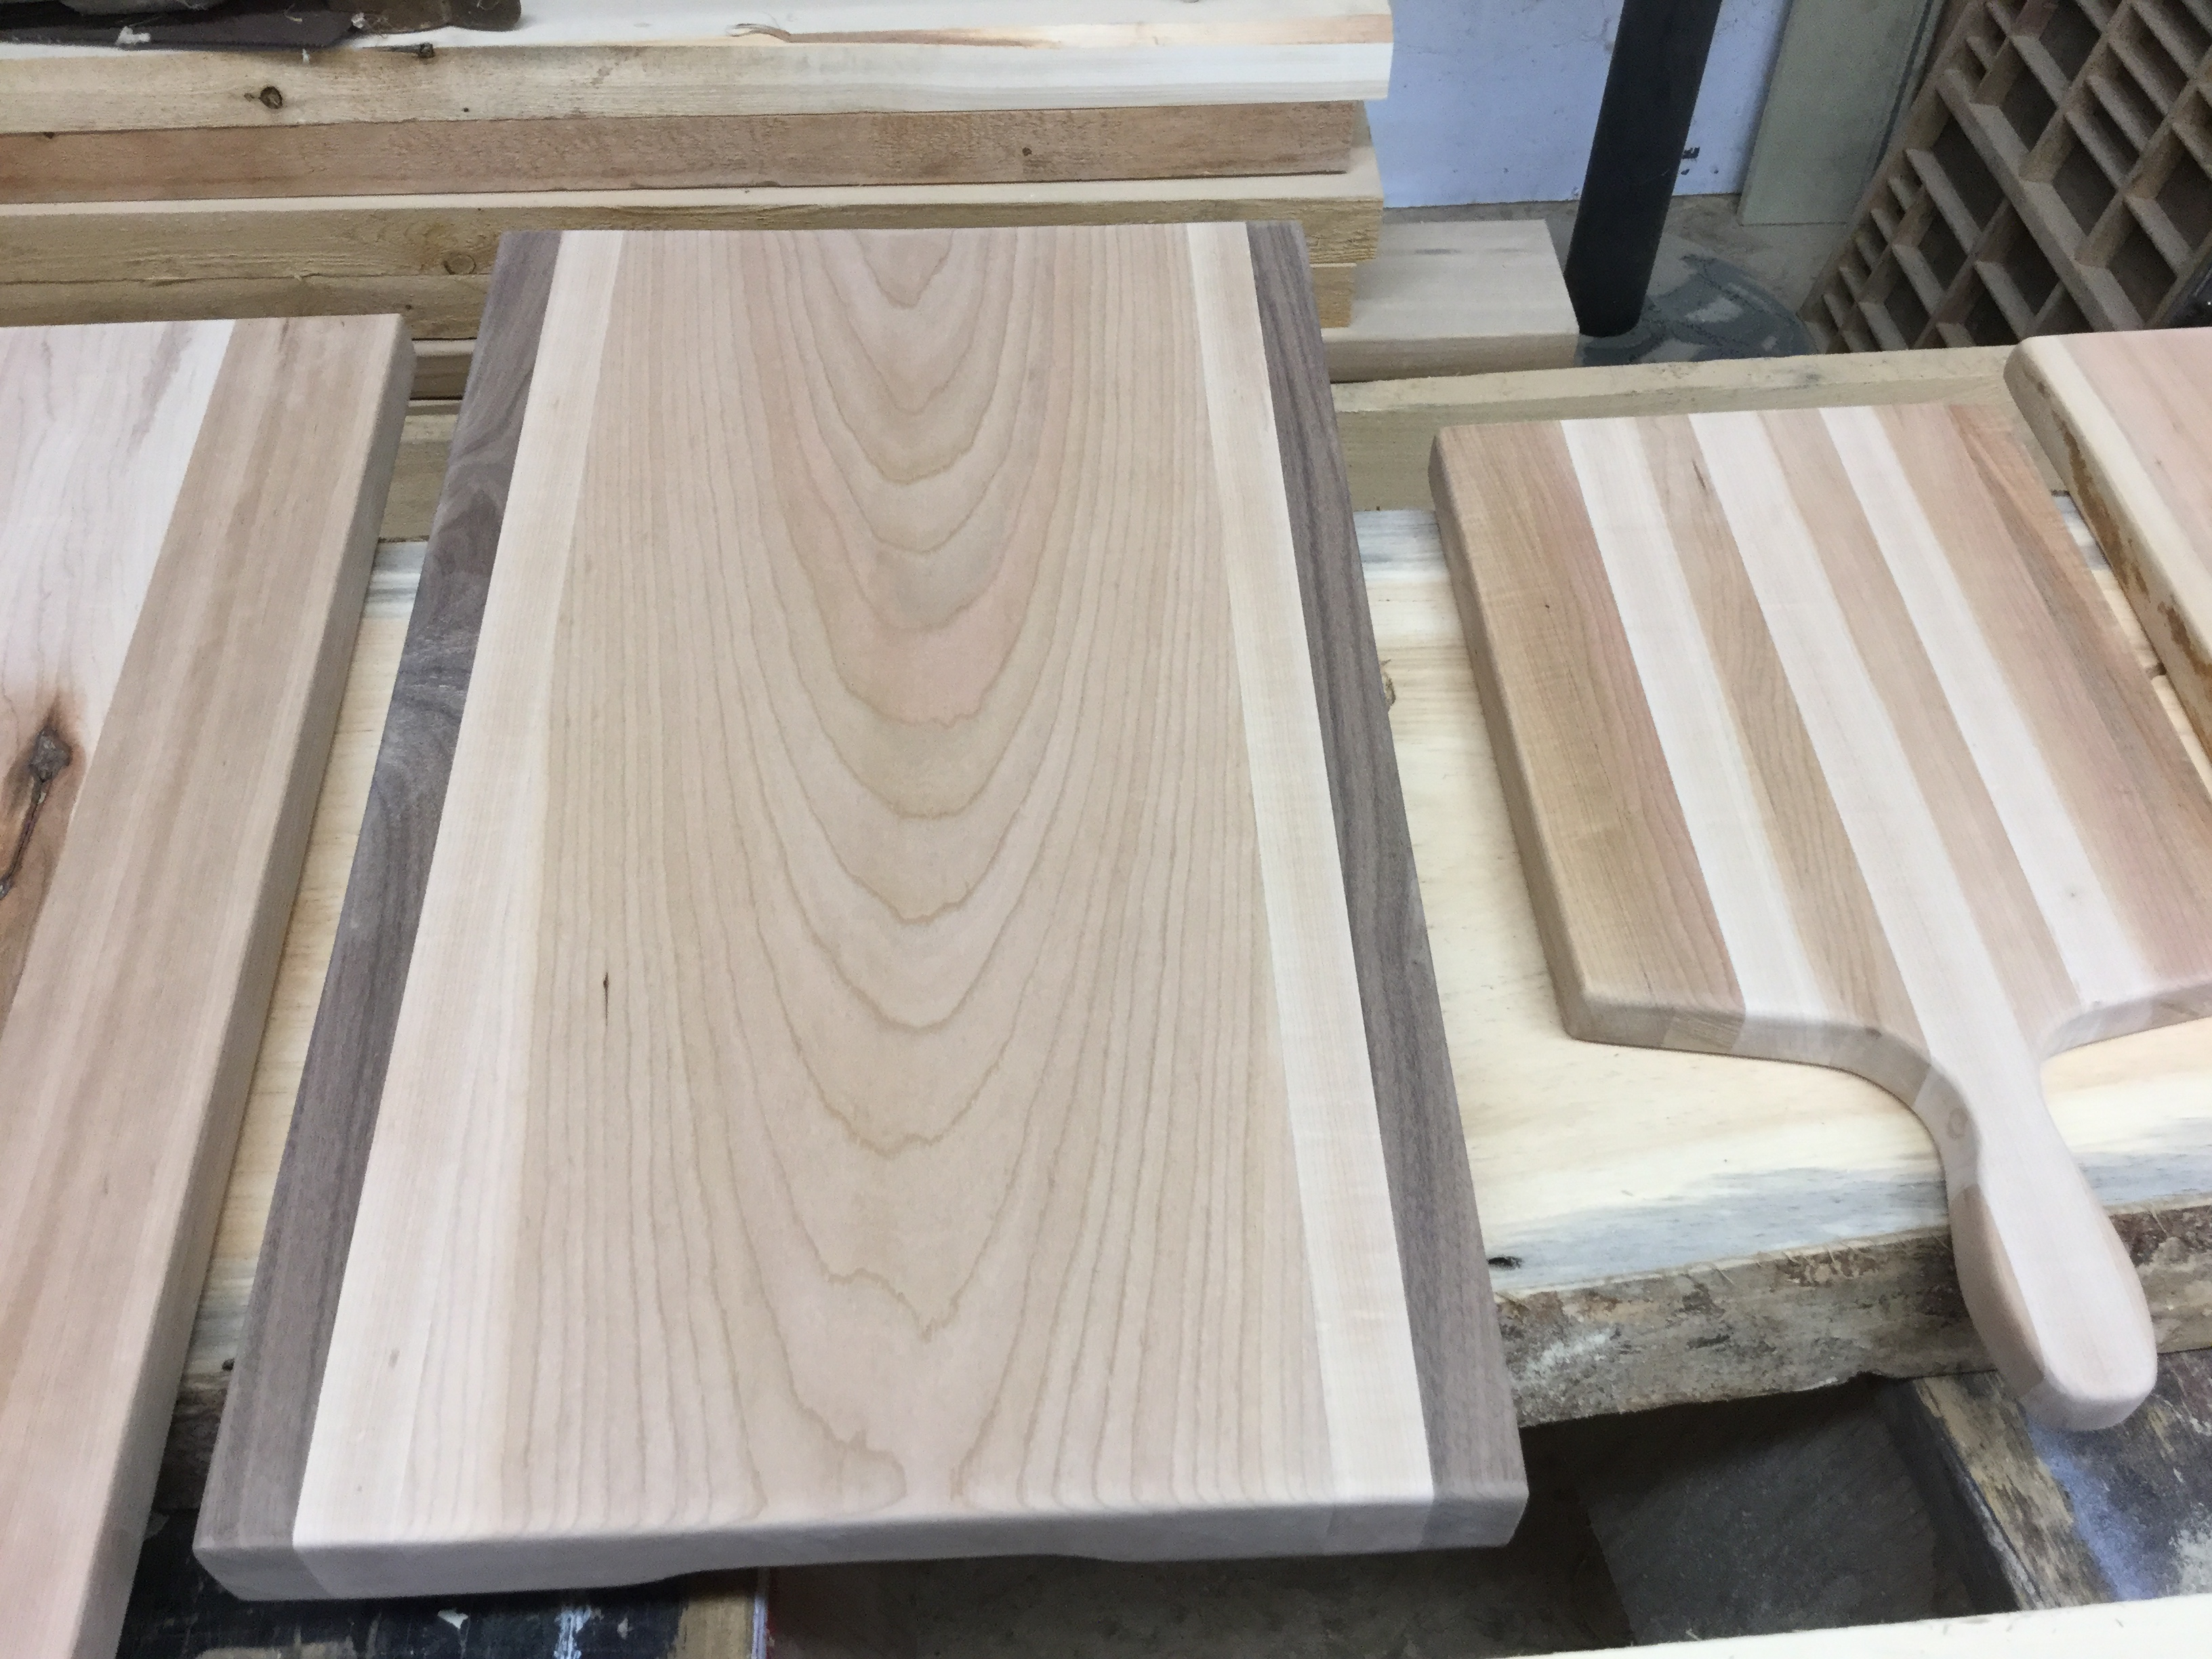 Charcuterie Boards - custom sizes available